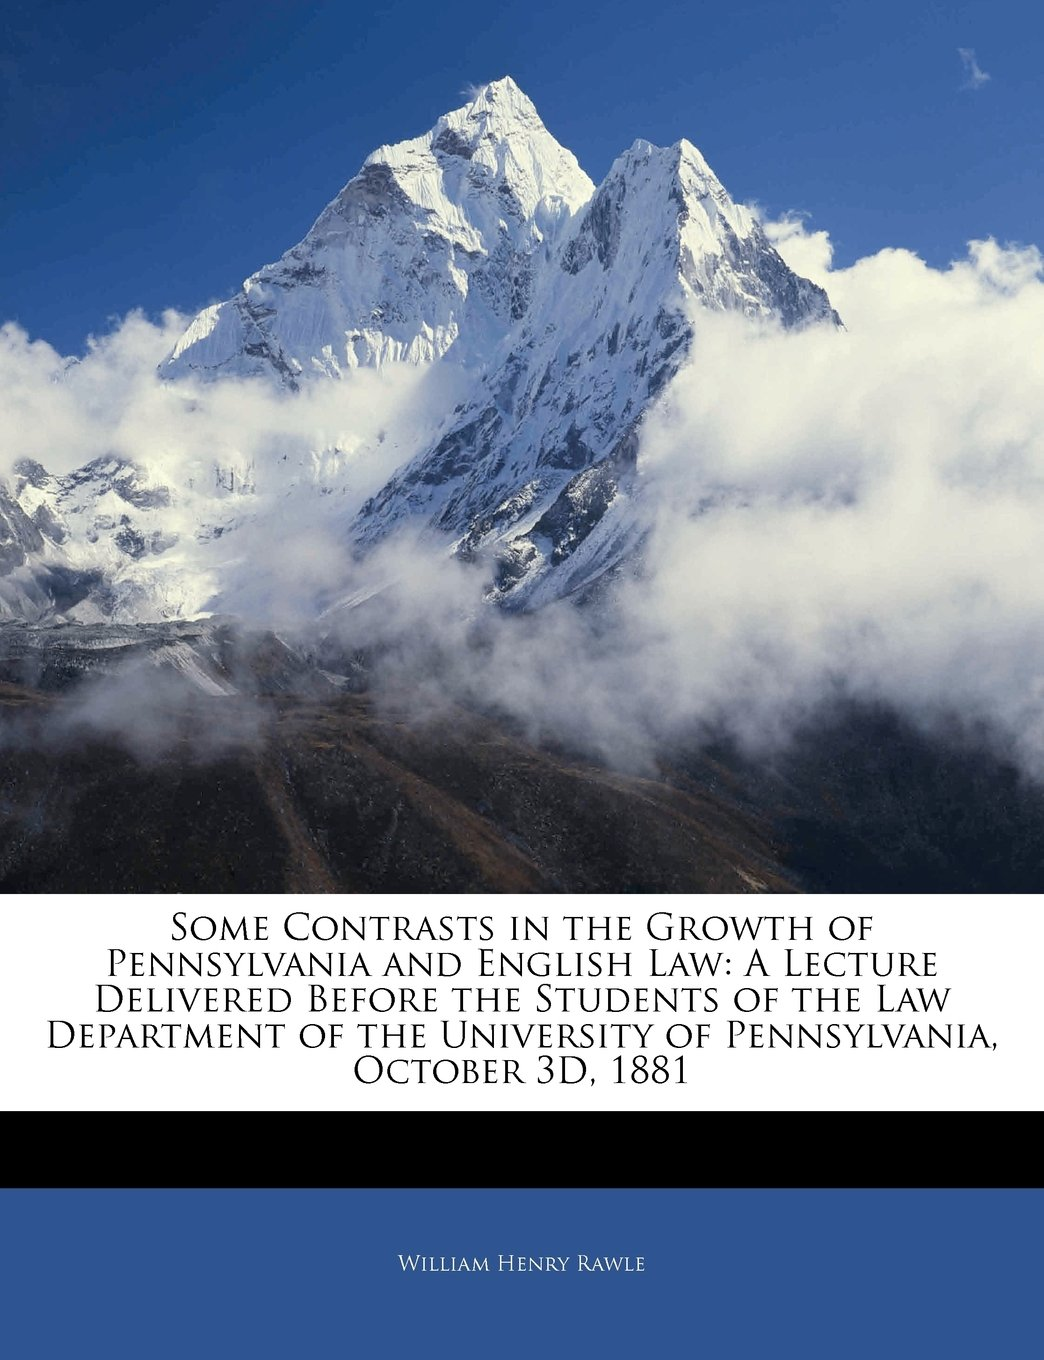 Download Some Contrasts in the Growth of Pennsylvania and English Law: A Lecture Delivered Before the Students of the Law Department of the University of Pennsylvania, October 3D, 1881 ebook